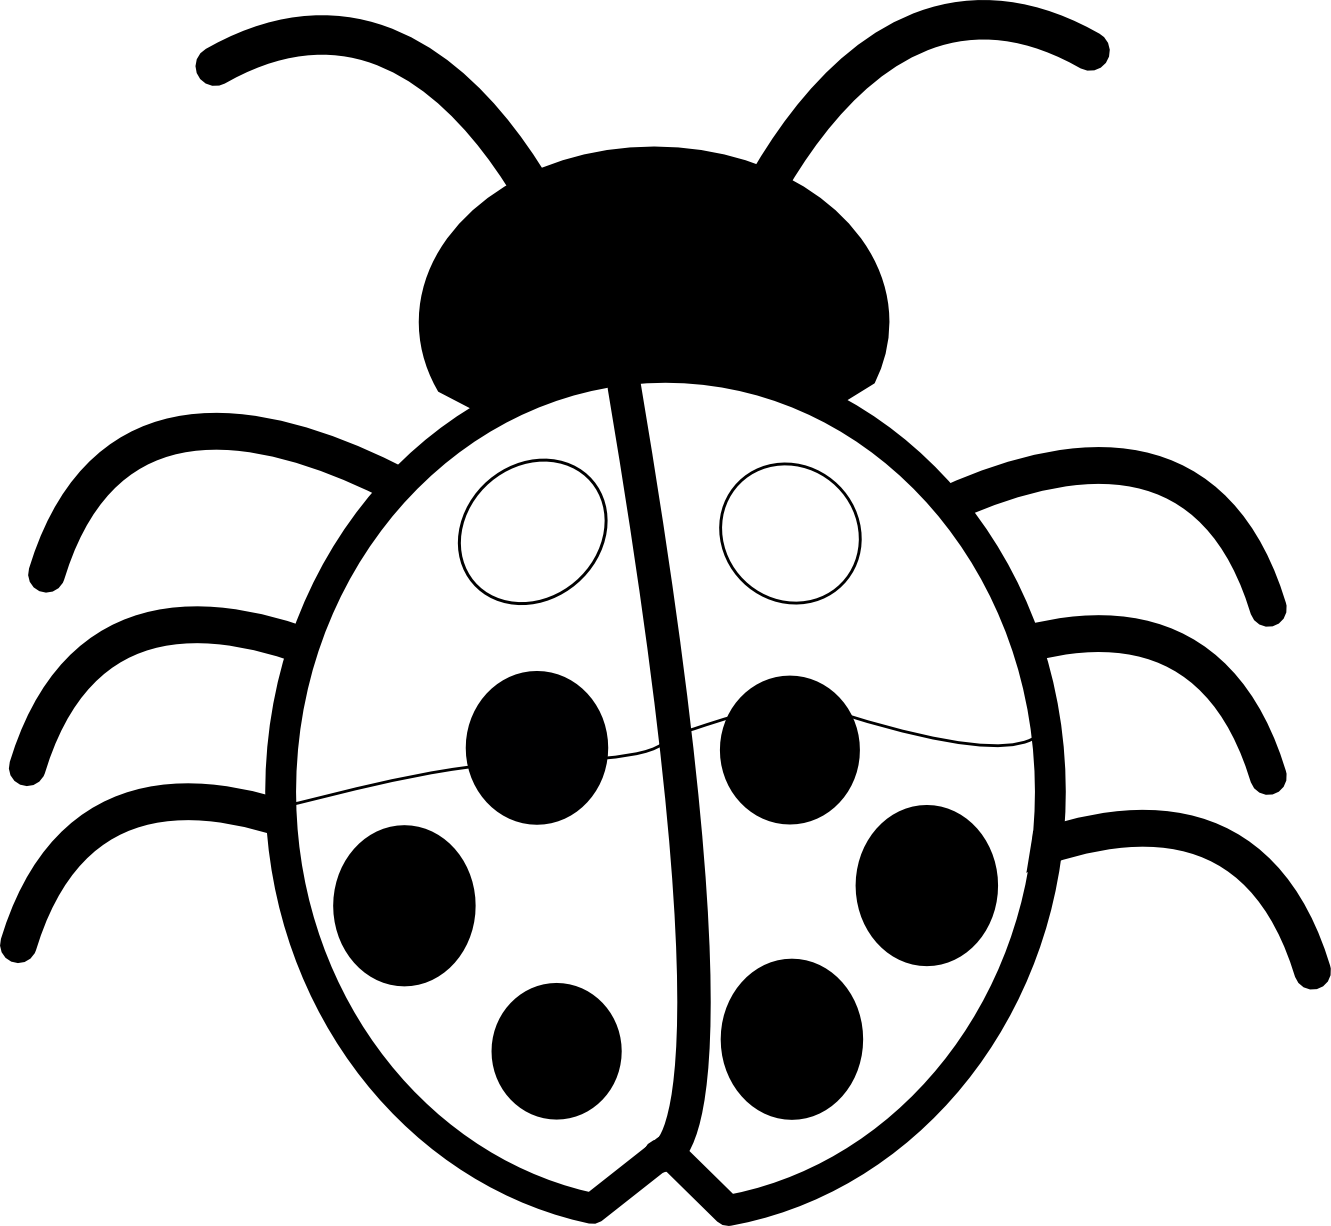 Top drawing black and white. Free ladybug outline download